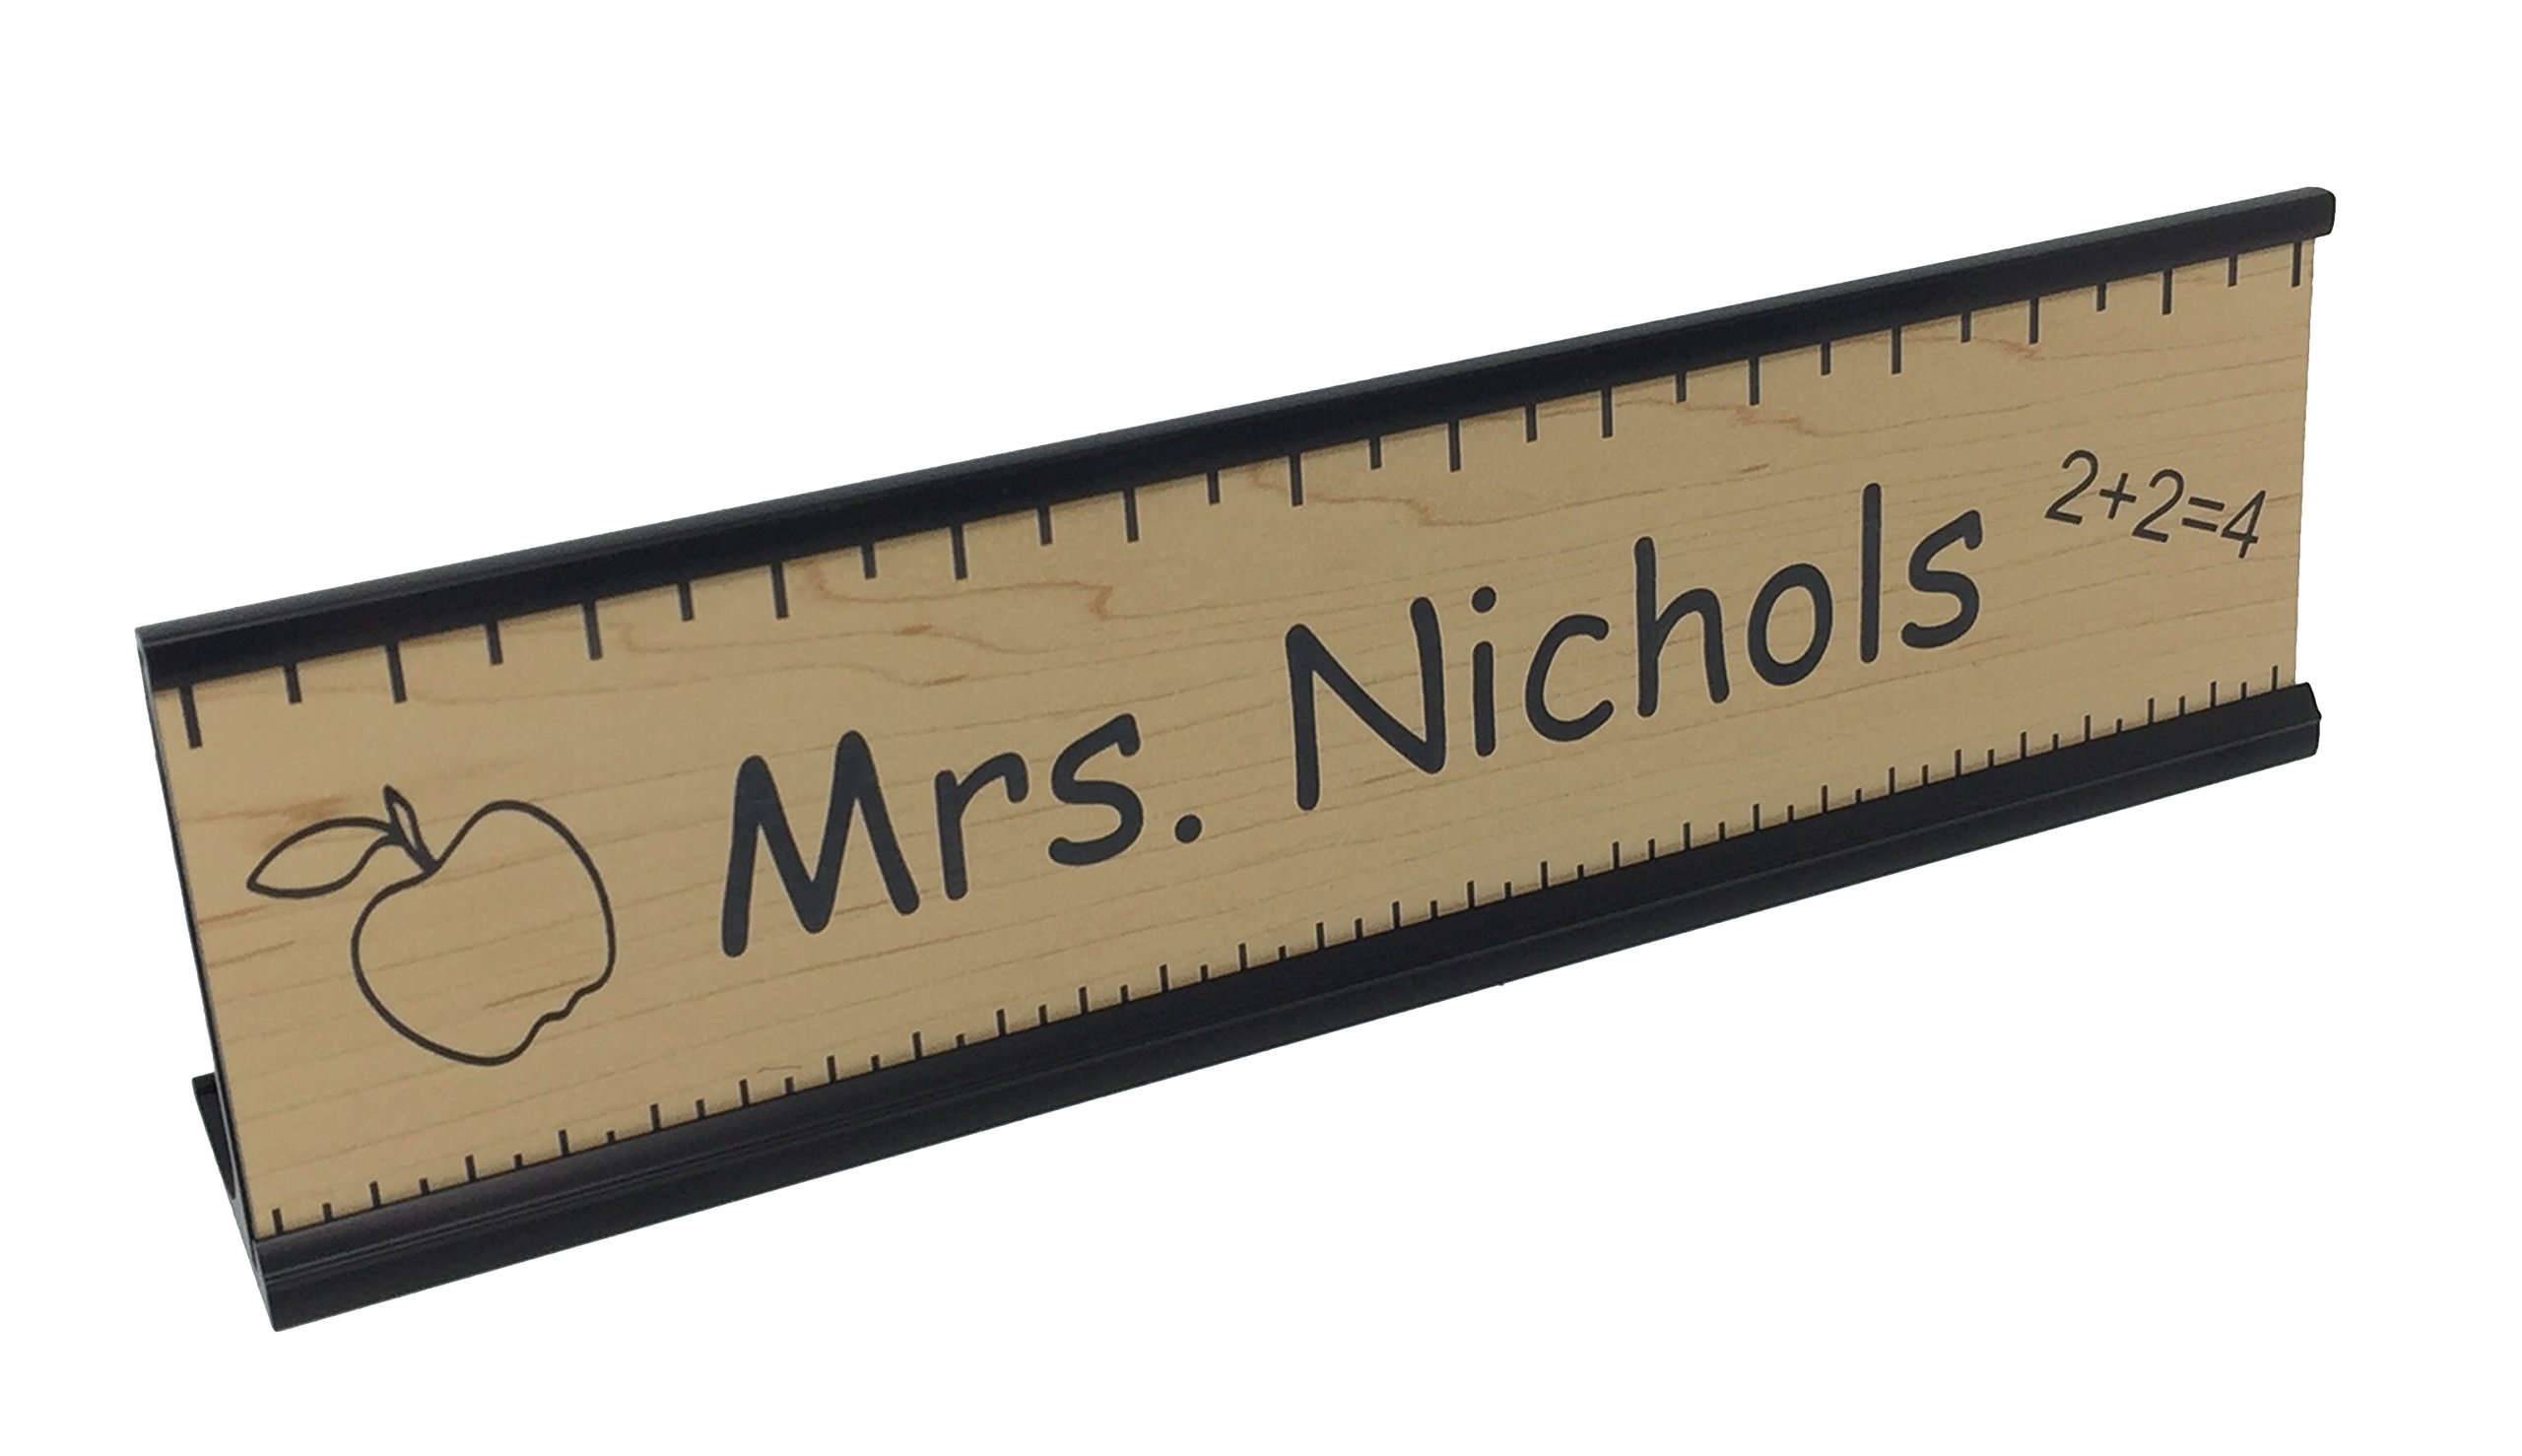 Teacher Office Desk Name Plate or Door Sign with or w/o holder - Free Engraving - Great Gift for School Teacher! (With Black Desk Holder) by Griffco